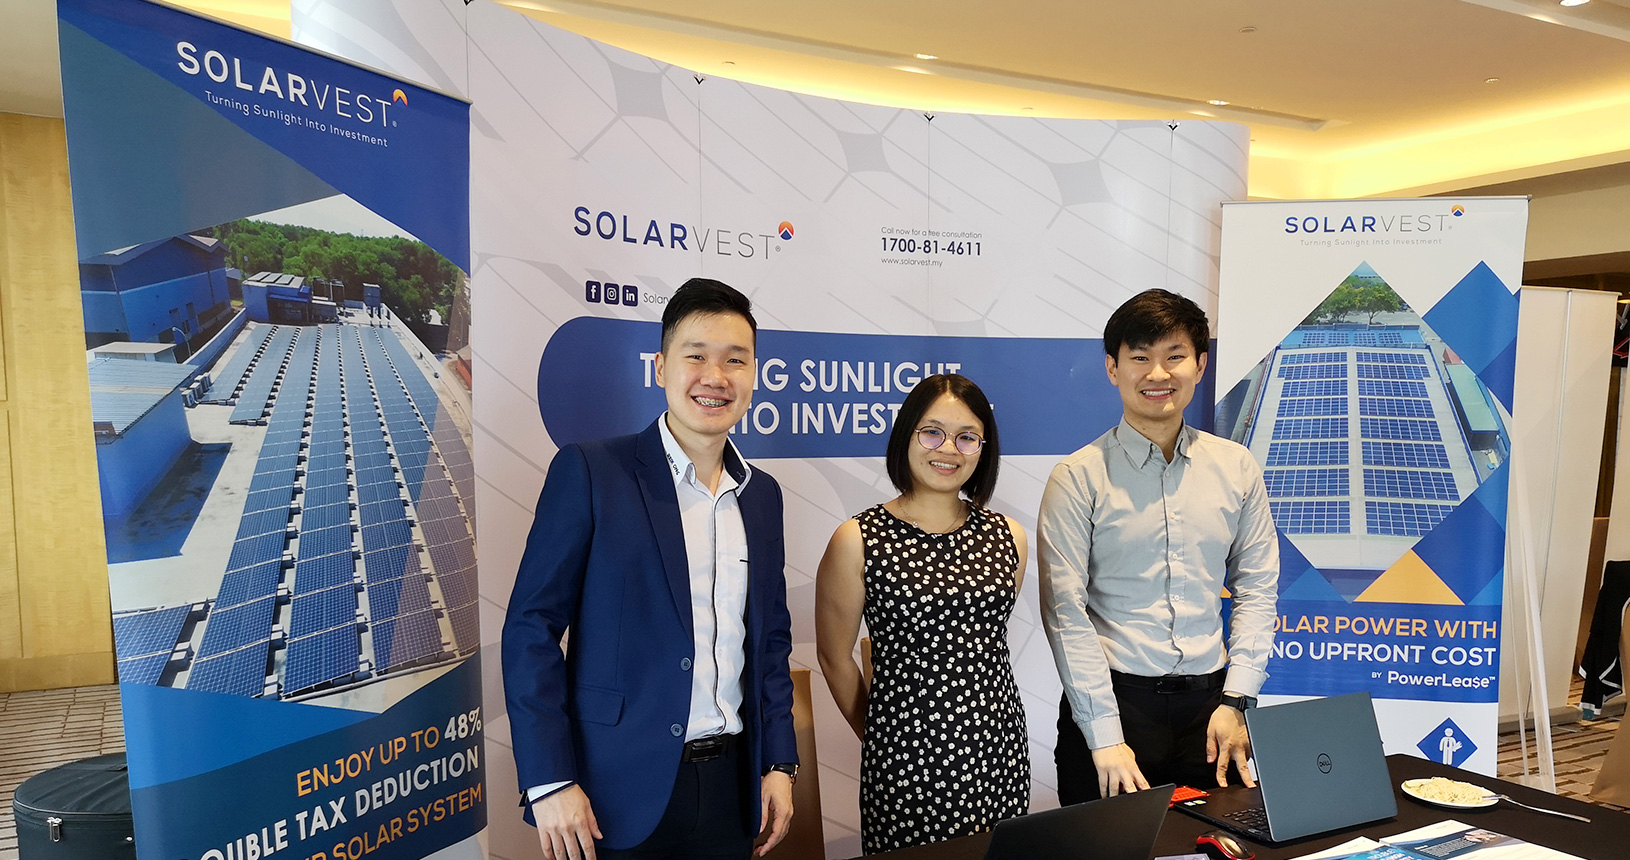 Solarvest exhibition booth group photo